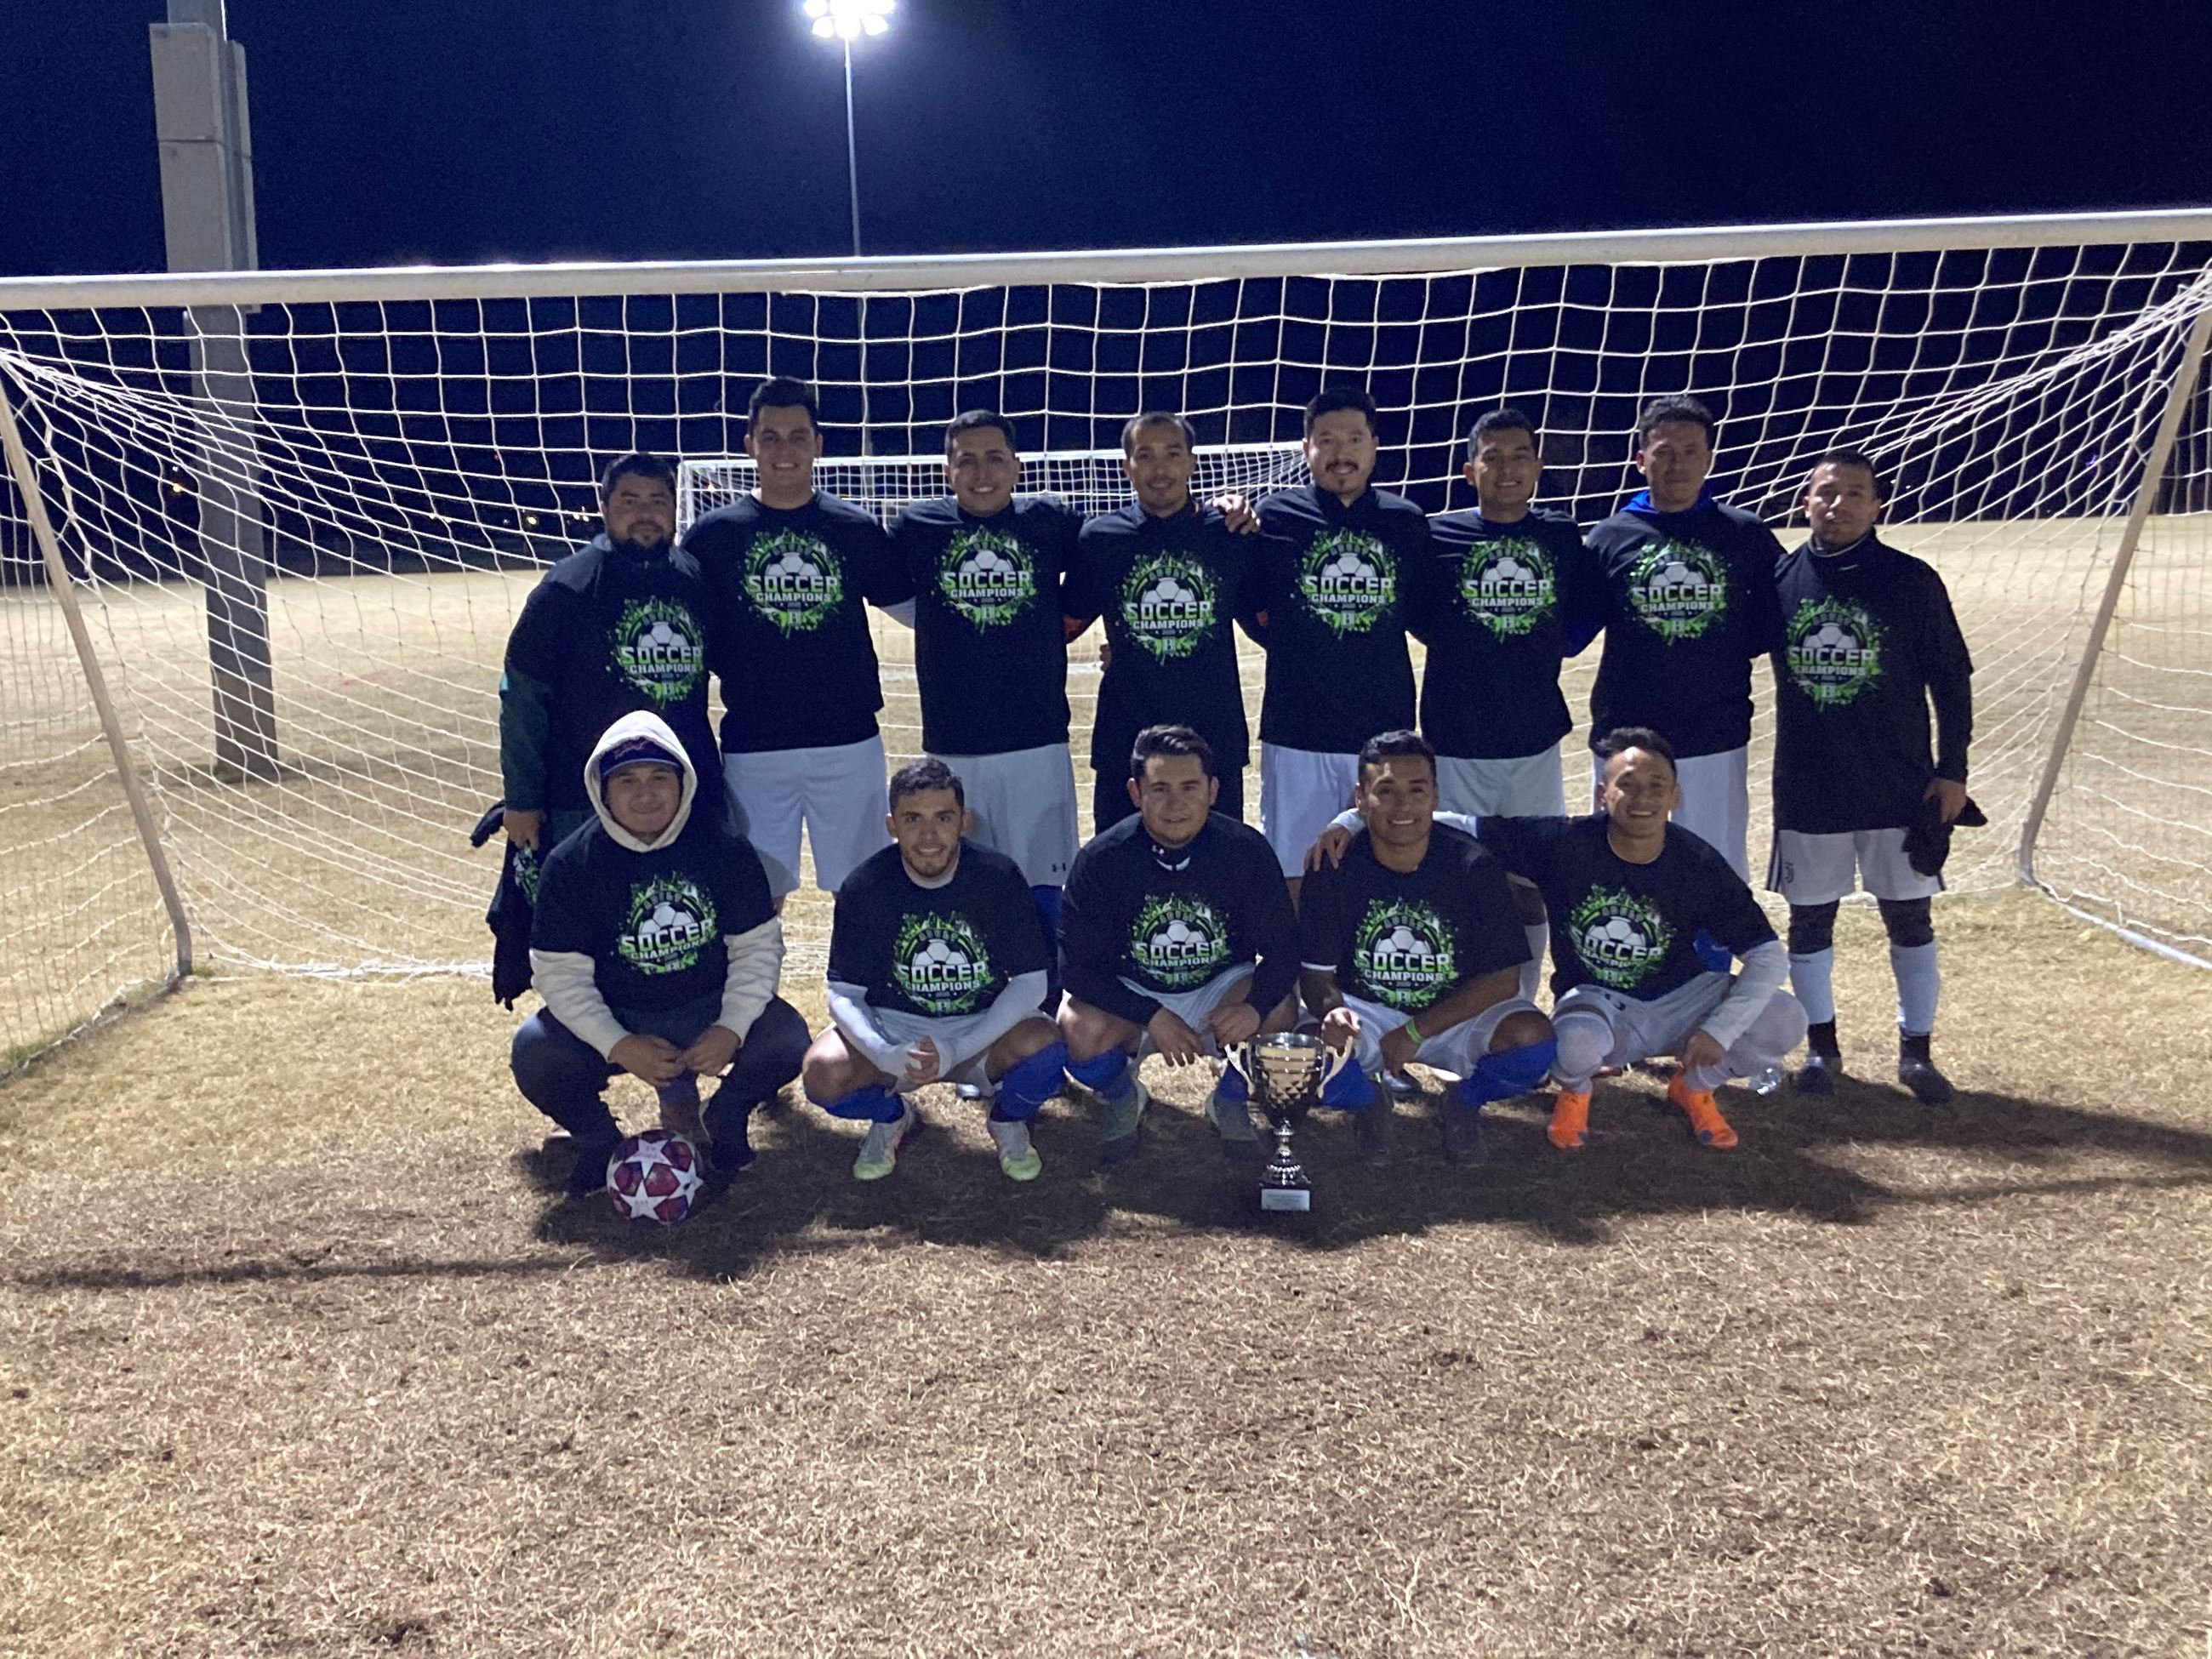 2020 BPR Adult Soccer - Wednesday Competitive Champion - SAI